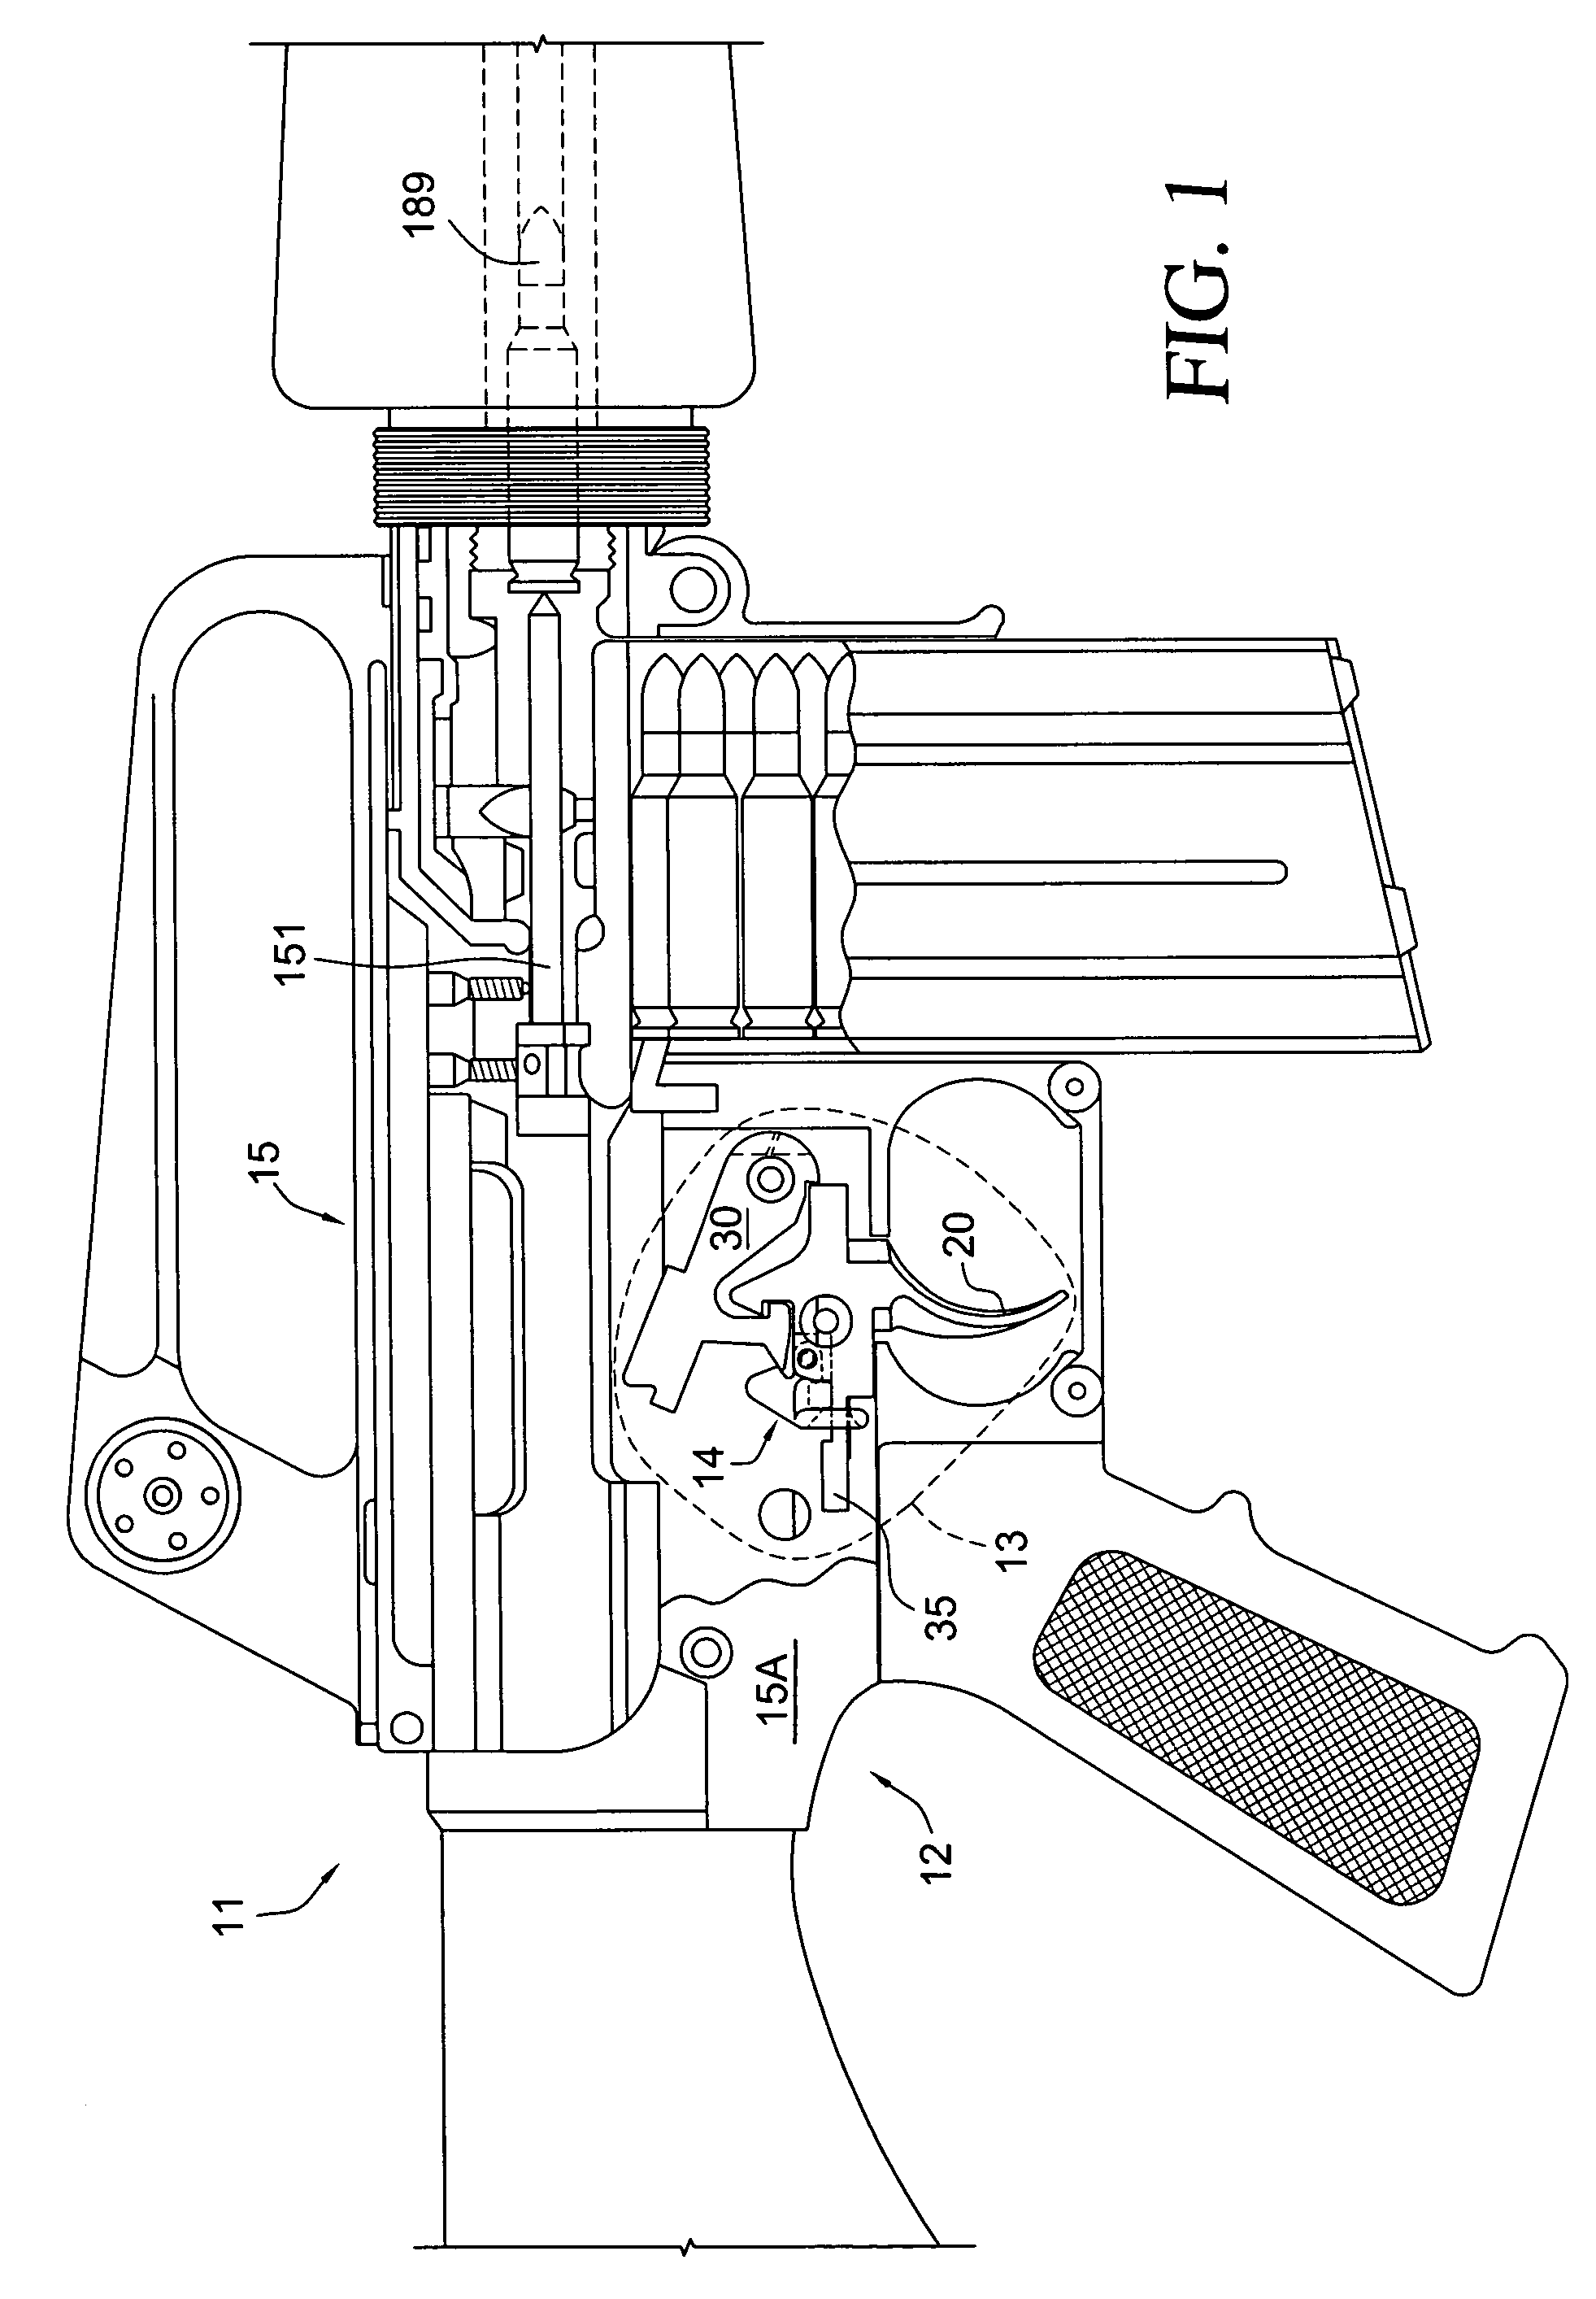 m16 upper receiver assembly diagram cb750 simplified wiring patent us7854084 ar15 t400 hook under trigger